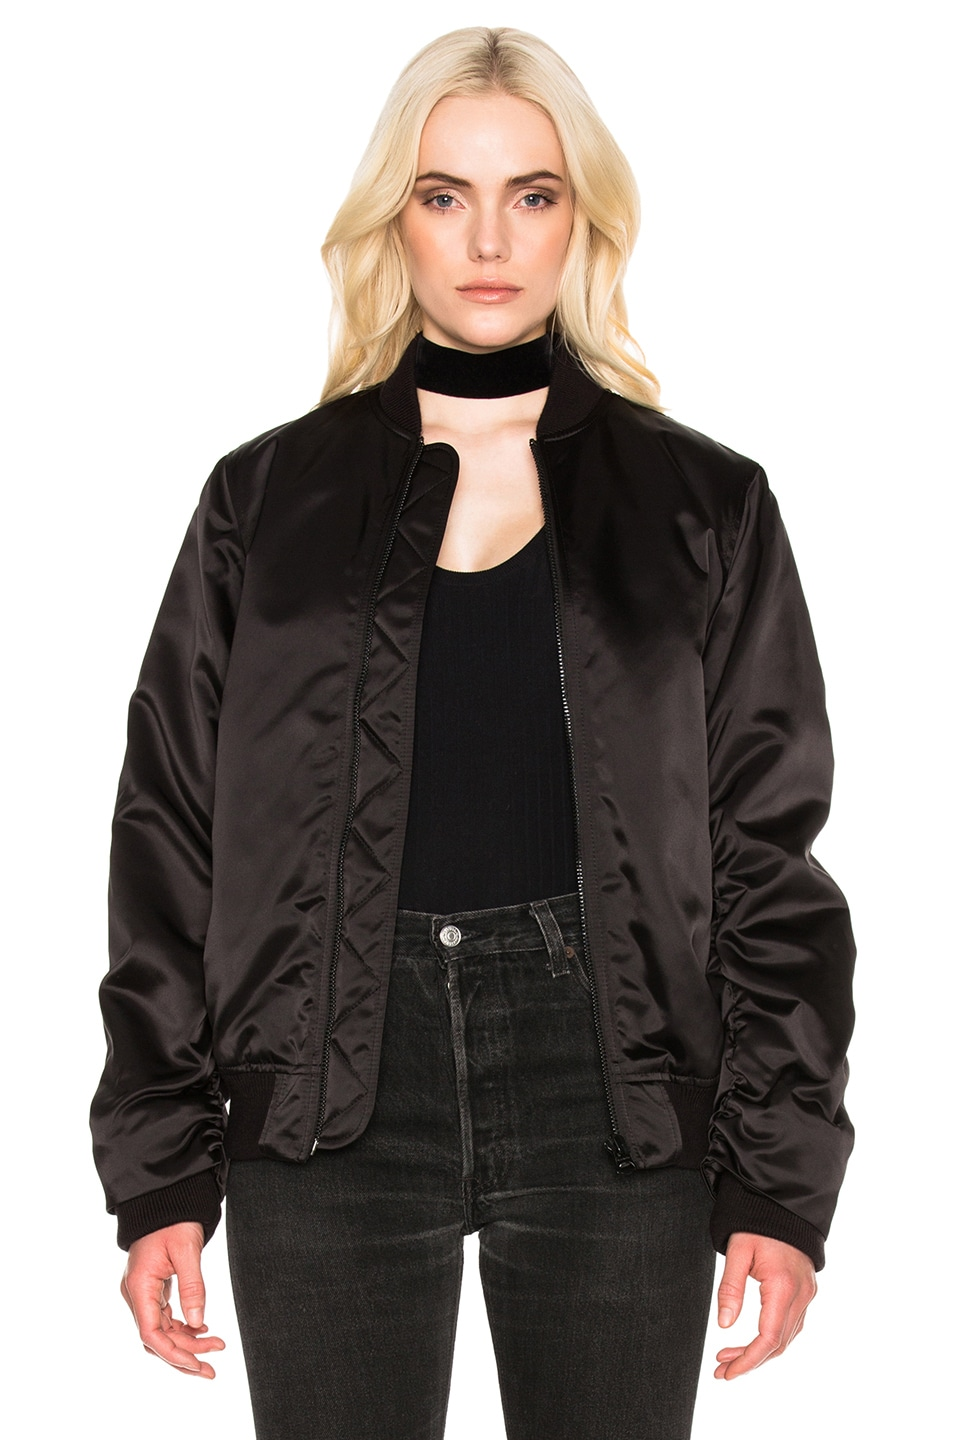 Acne bomber jacket black